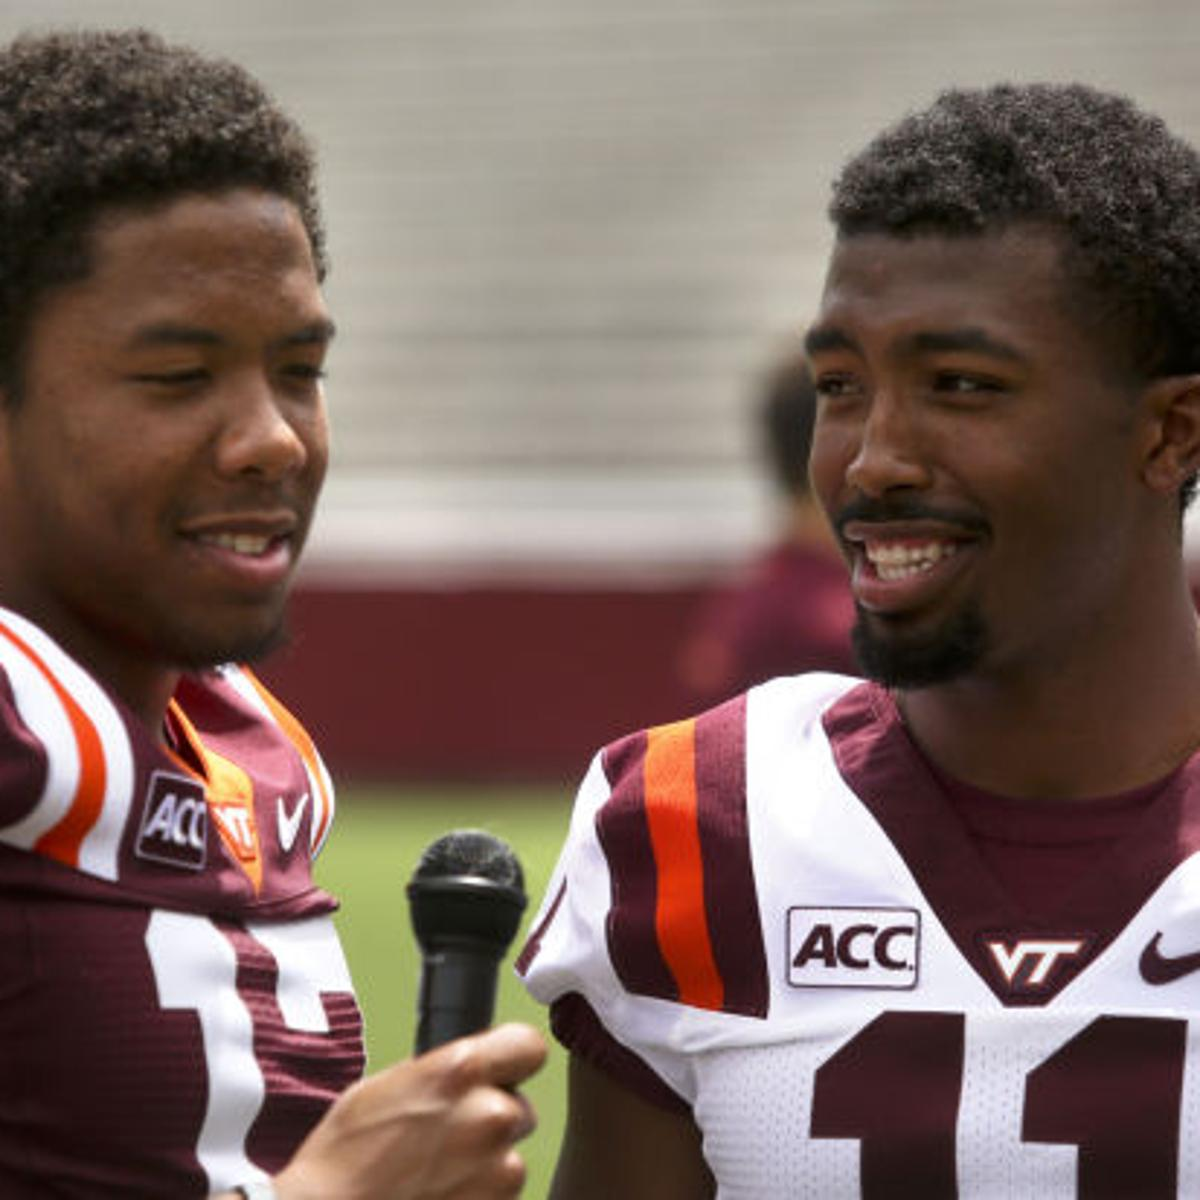 Fuller Brothers as Virginia Tech College Students